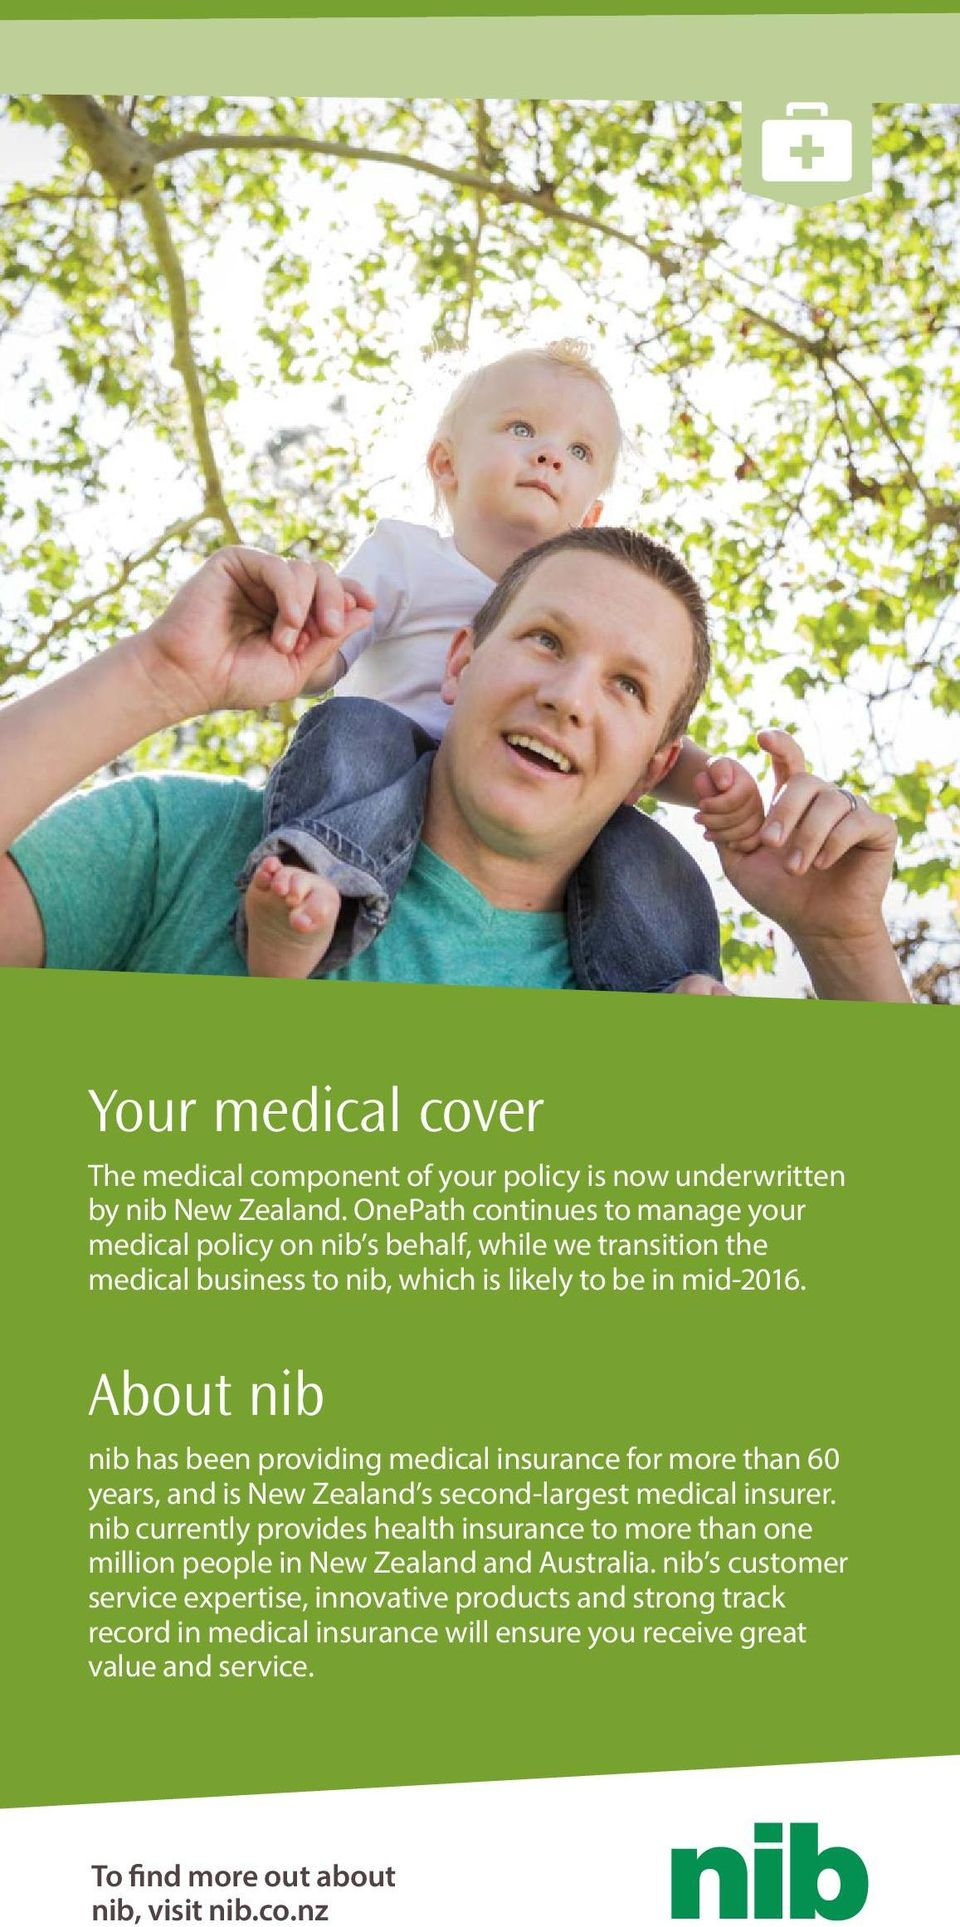 About nib nib has been providing medical insurance for more than 60 years, and is New Zealand s second-largest medical insurer.